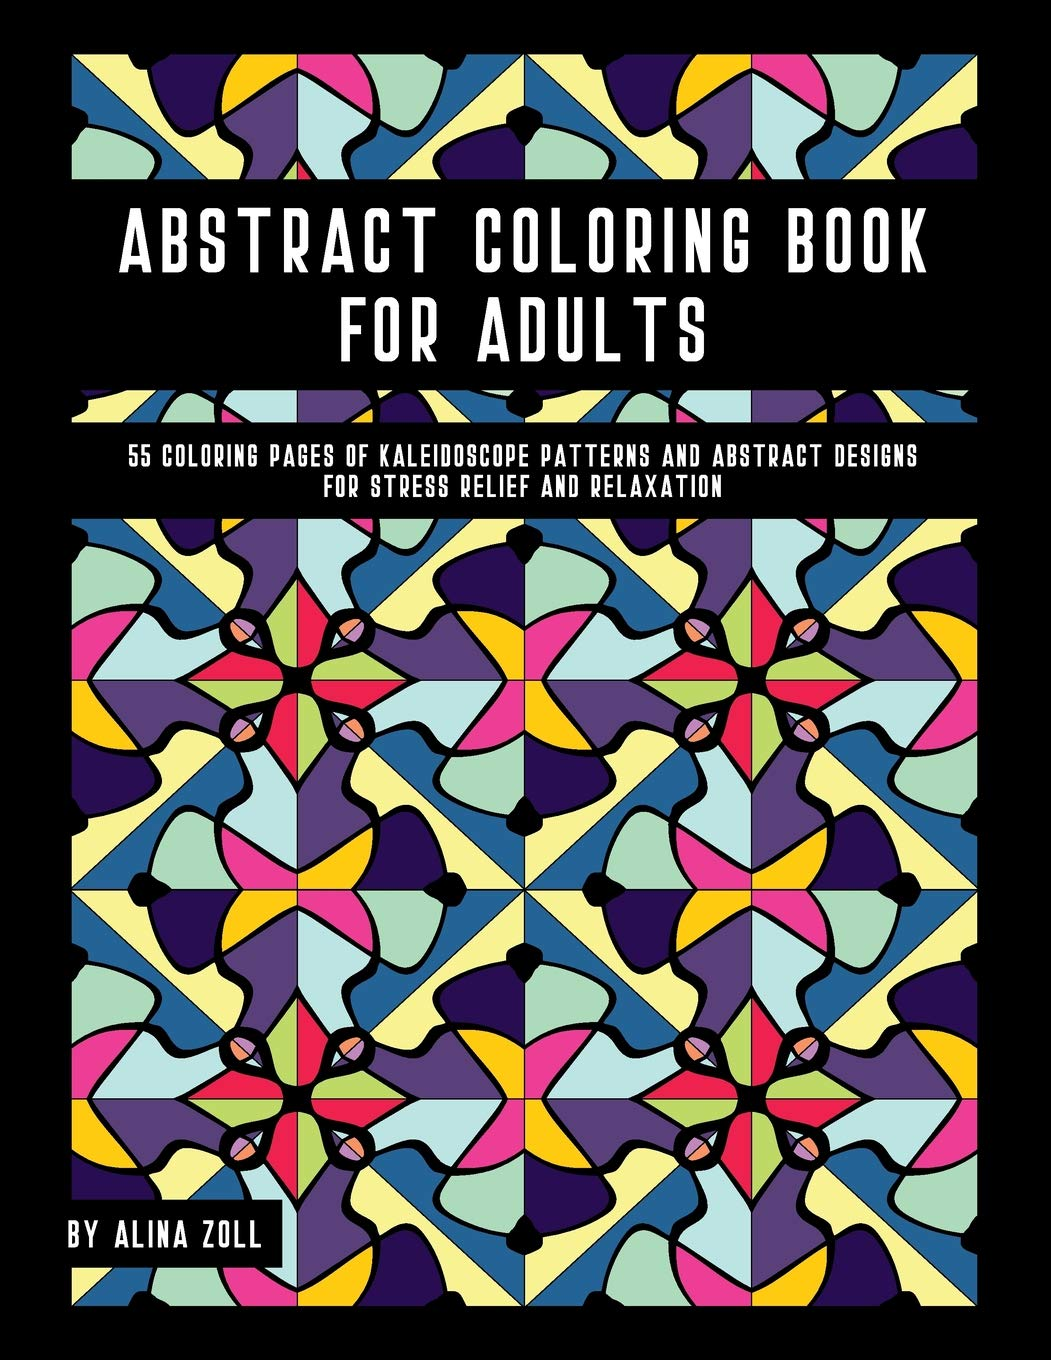 Amazon.com: Abstract Coloring Book for Adults: 55 Coloring ...